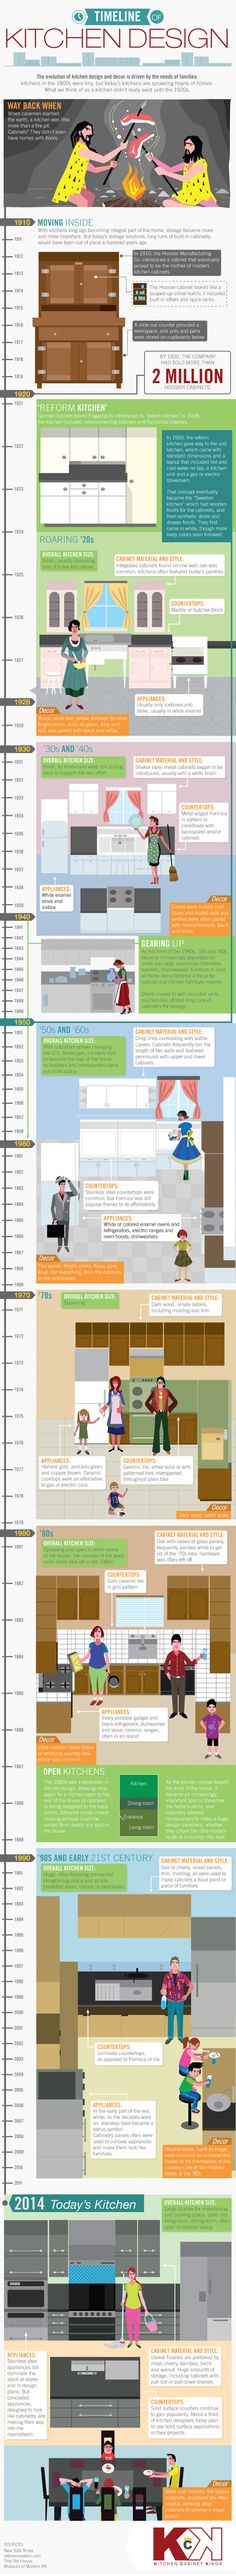 Learn about the history of kitchen design with this infographic created by Kitchen Cabinet Kings.